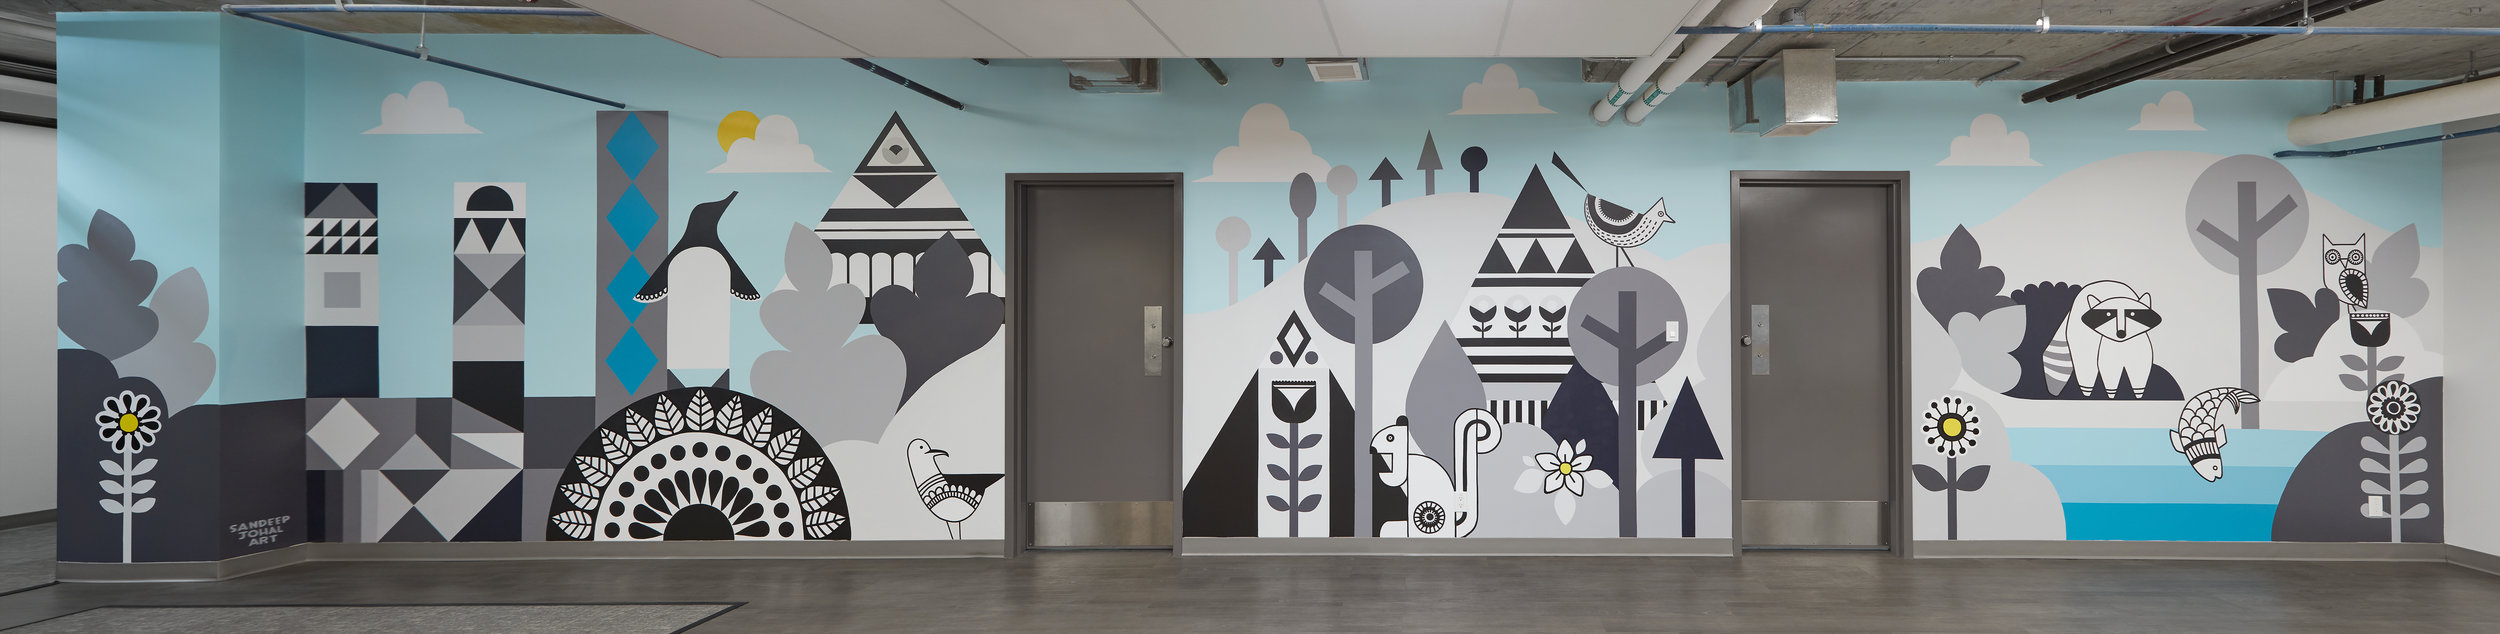 This mural was created for the staff room of Civic Hotel, Surrey, 2018 (~ 240 sq ft+) Located at 13475 Central Avenue Photo credit: Laara Cerman